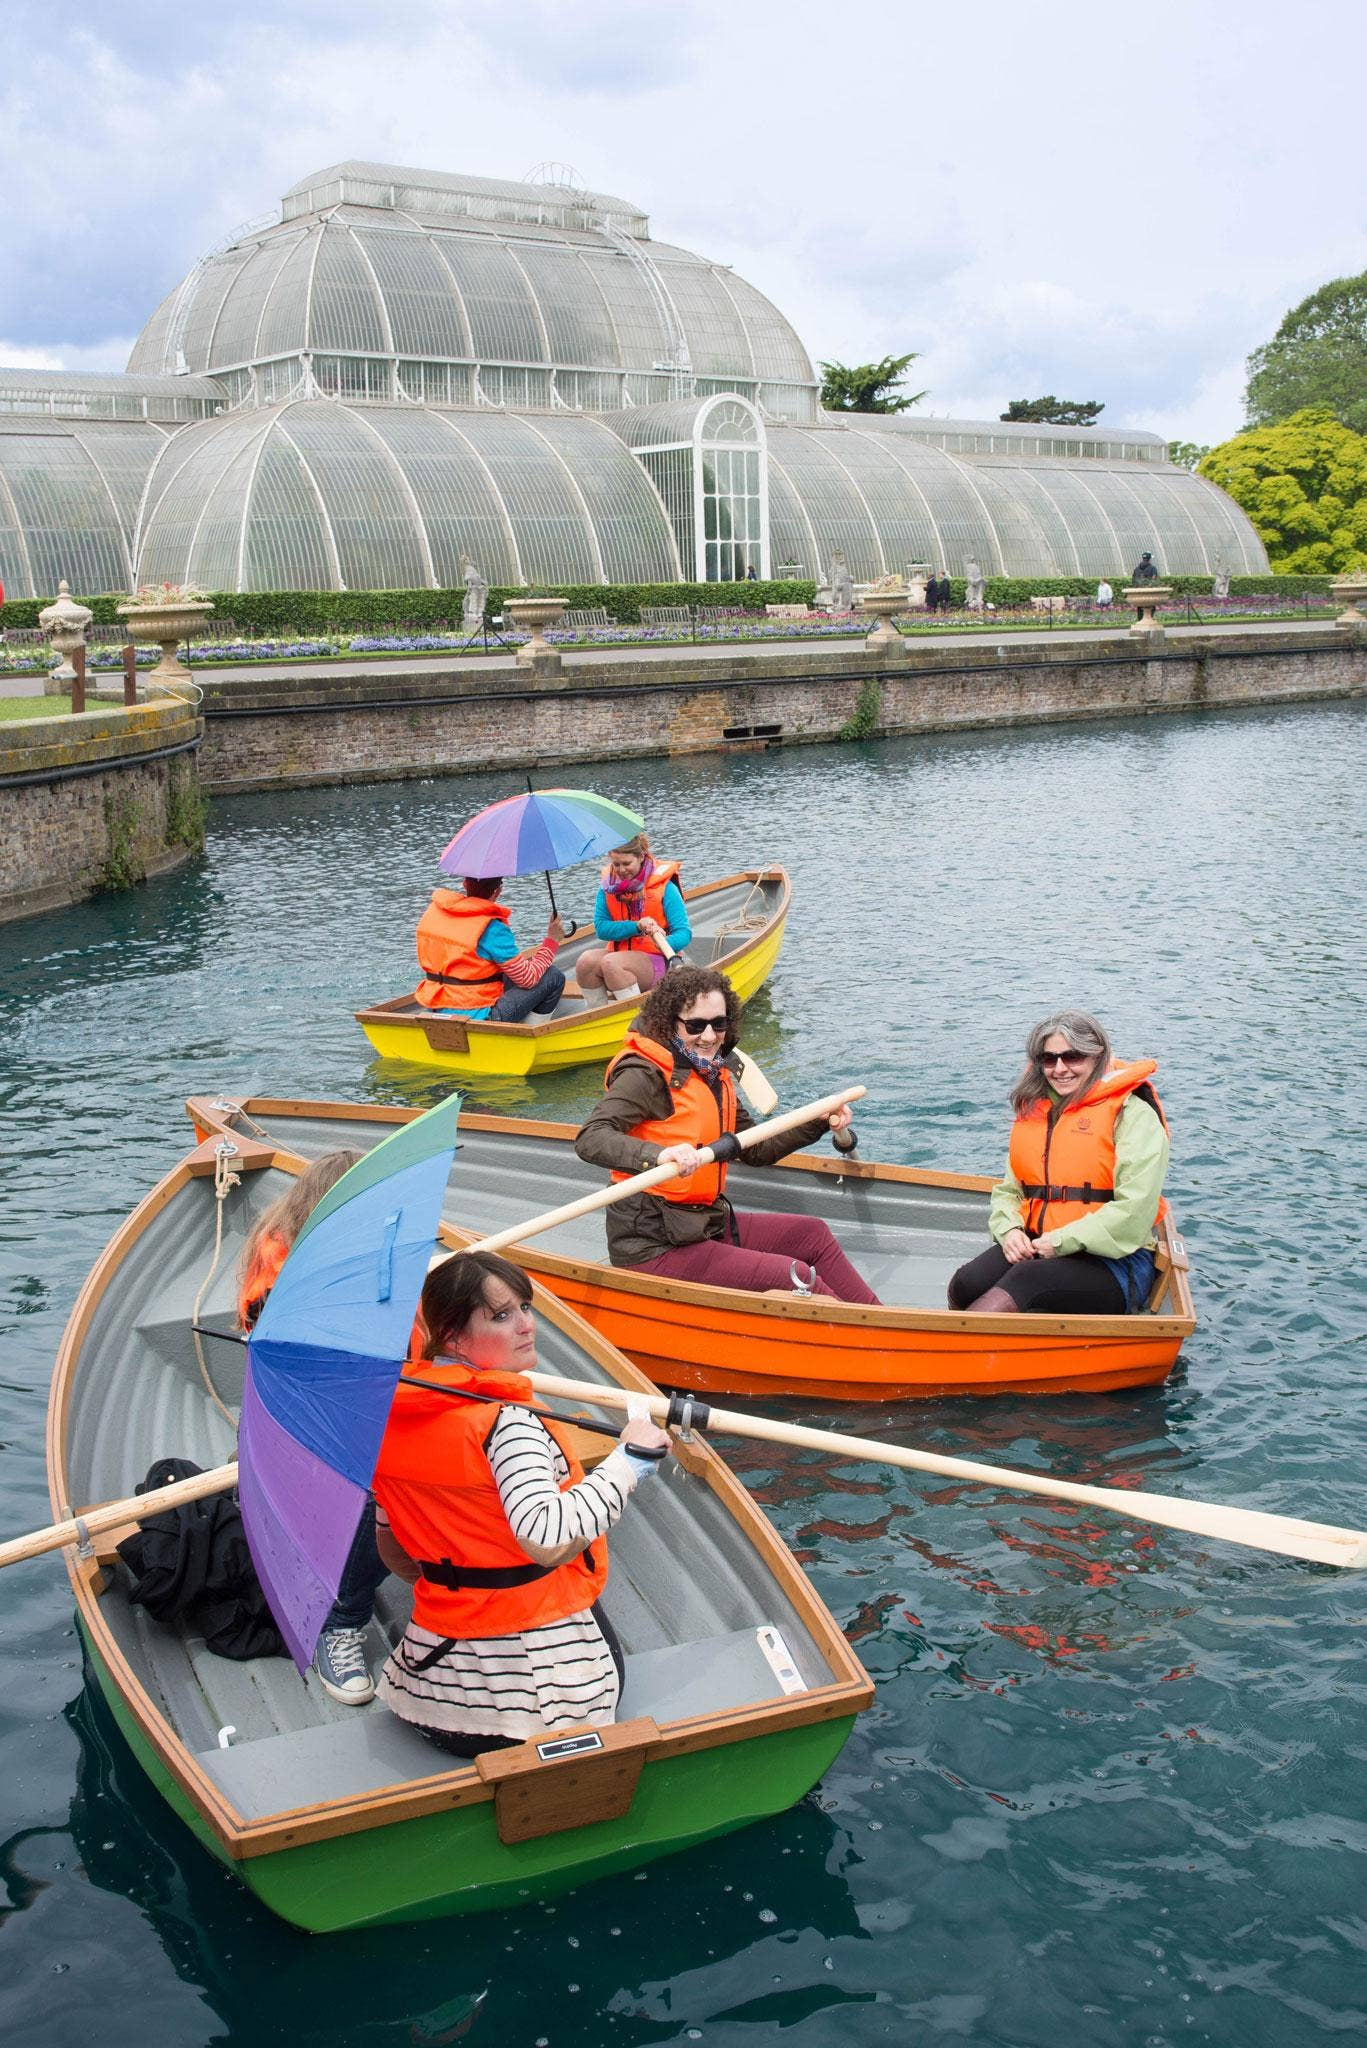 Go boating on a Tutti Frutti lake at the gardens in Kew